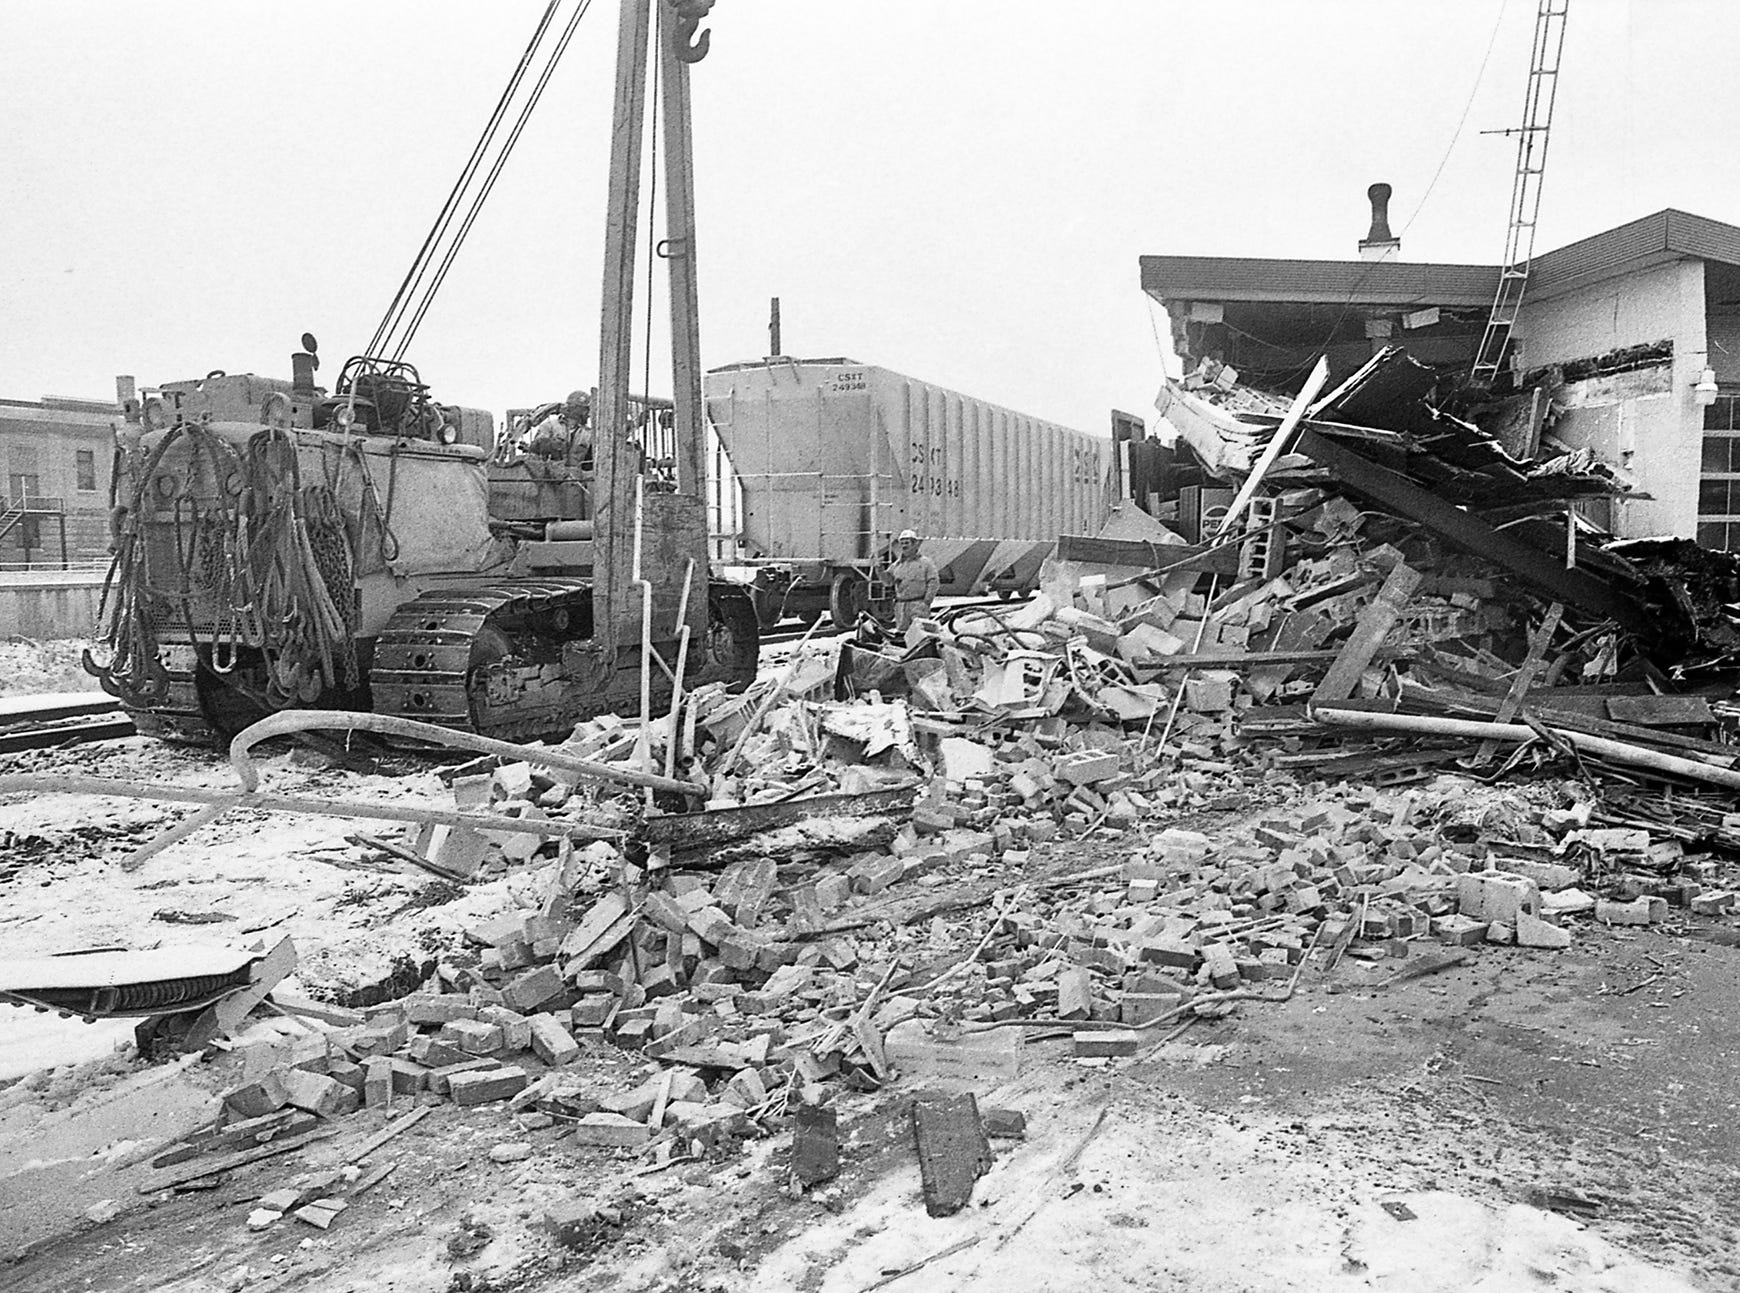 In December 1989, a train left the tracks near Arch Street and North George Street in York and destroyed Ellis Brothers. Heavy equipment is used to clean up the incident. In the background at left is the armory that still stands today.